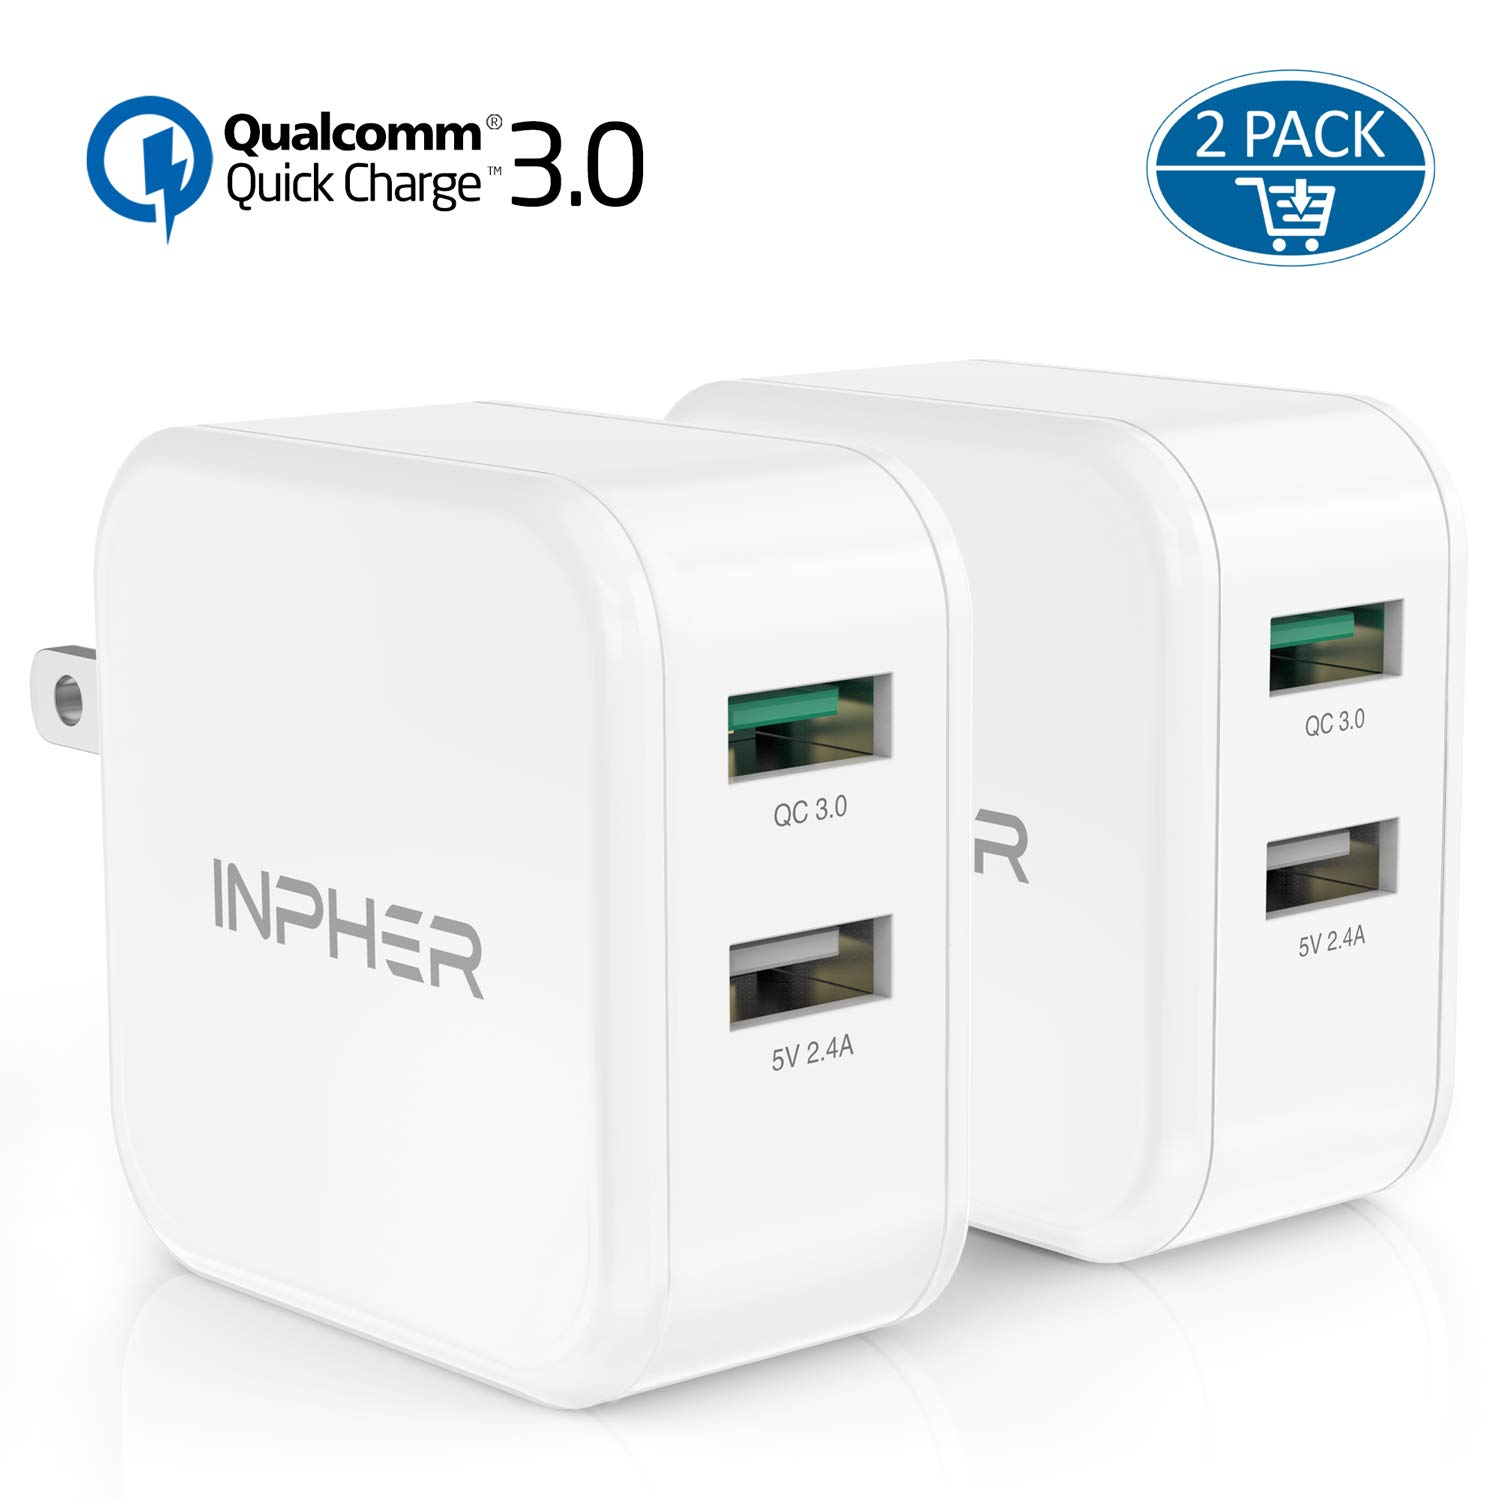 2 Quick Charge USB Wall Charger iPad iPhone 2.4A Dual Ports Power Adapter with SmartID Foldable Plug for Samsung Galaxy Inpher 30W Fast Charger 3.0 Google Pixel,Tablet and More